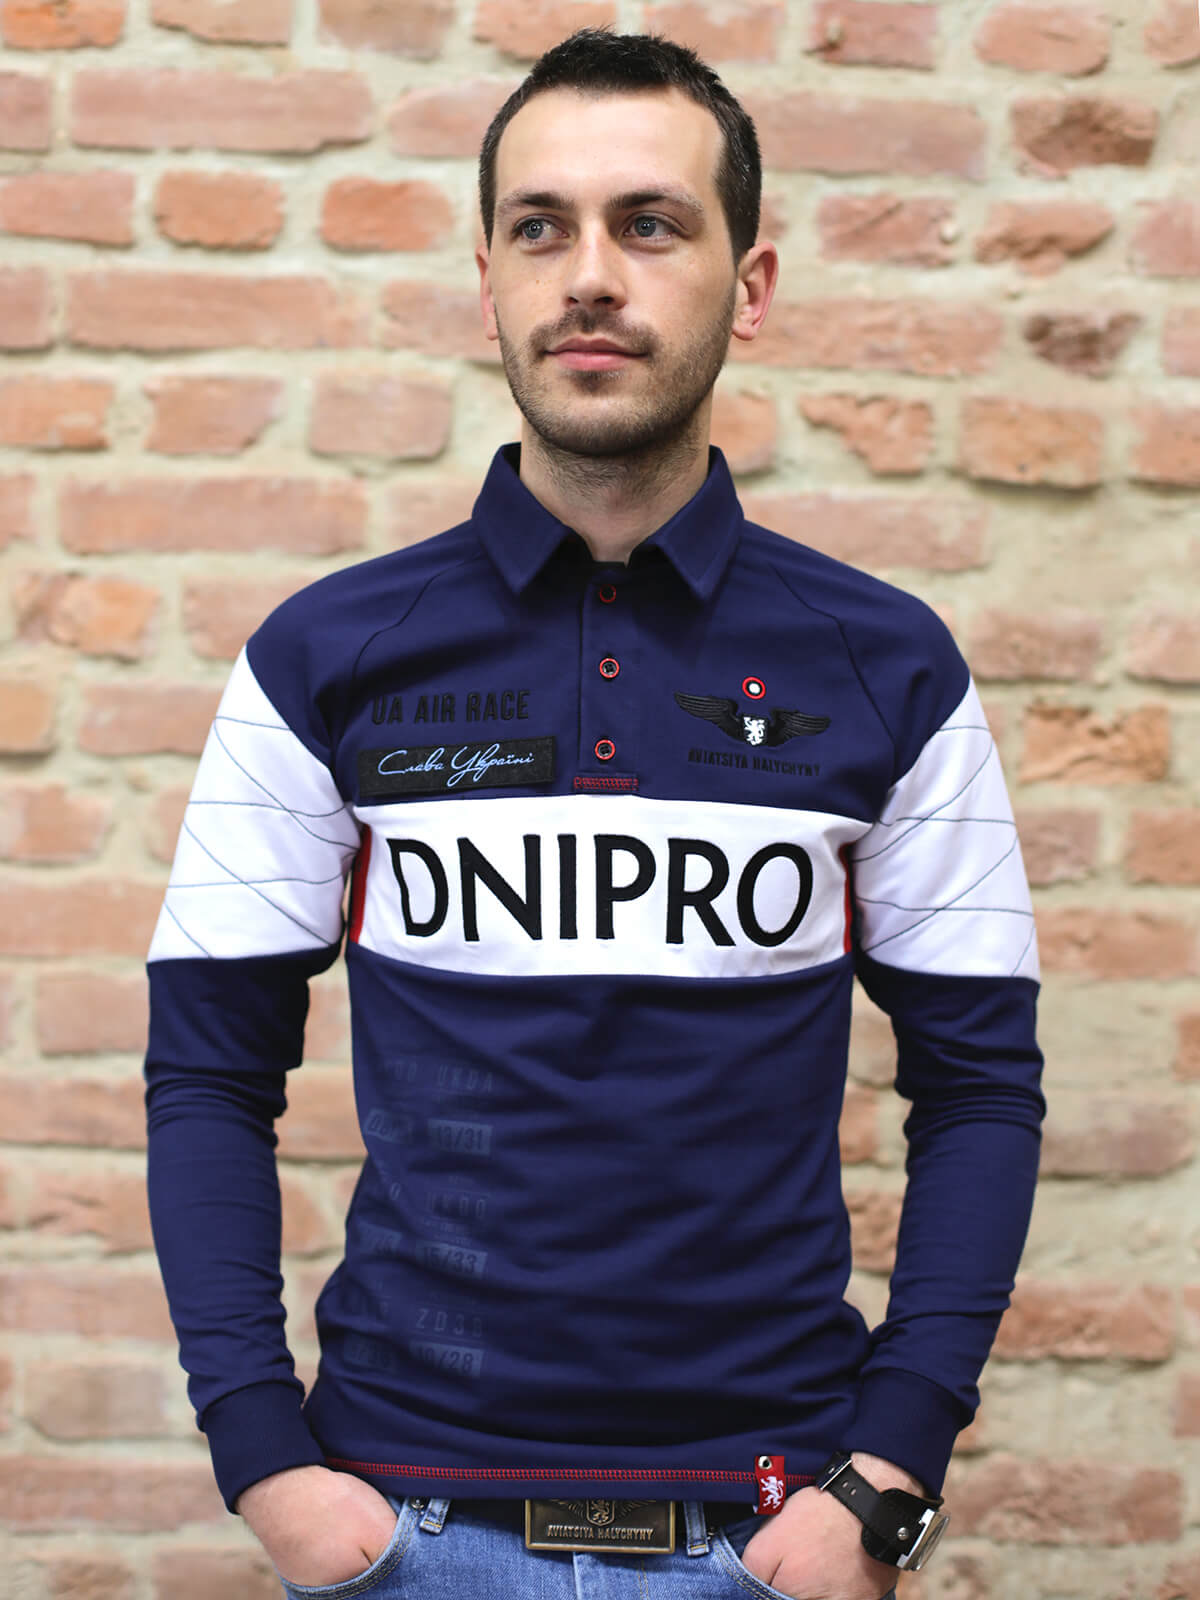 Men's Polo Long Air Race Dnipro. Color dark blue. Material: 75% cotton, 21% polyester, 4% spandex.